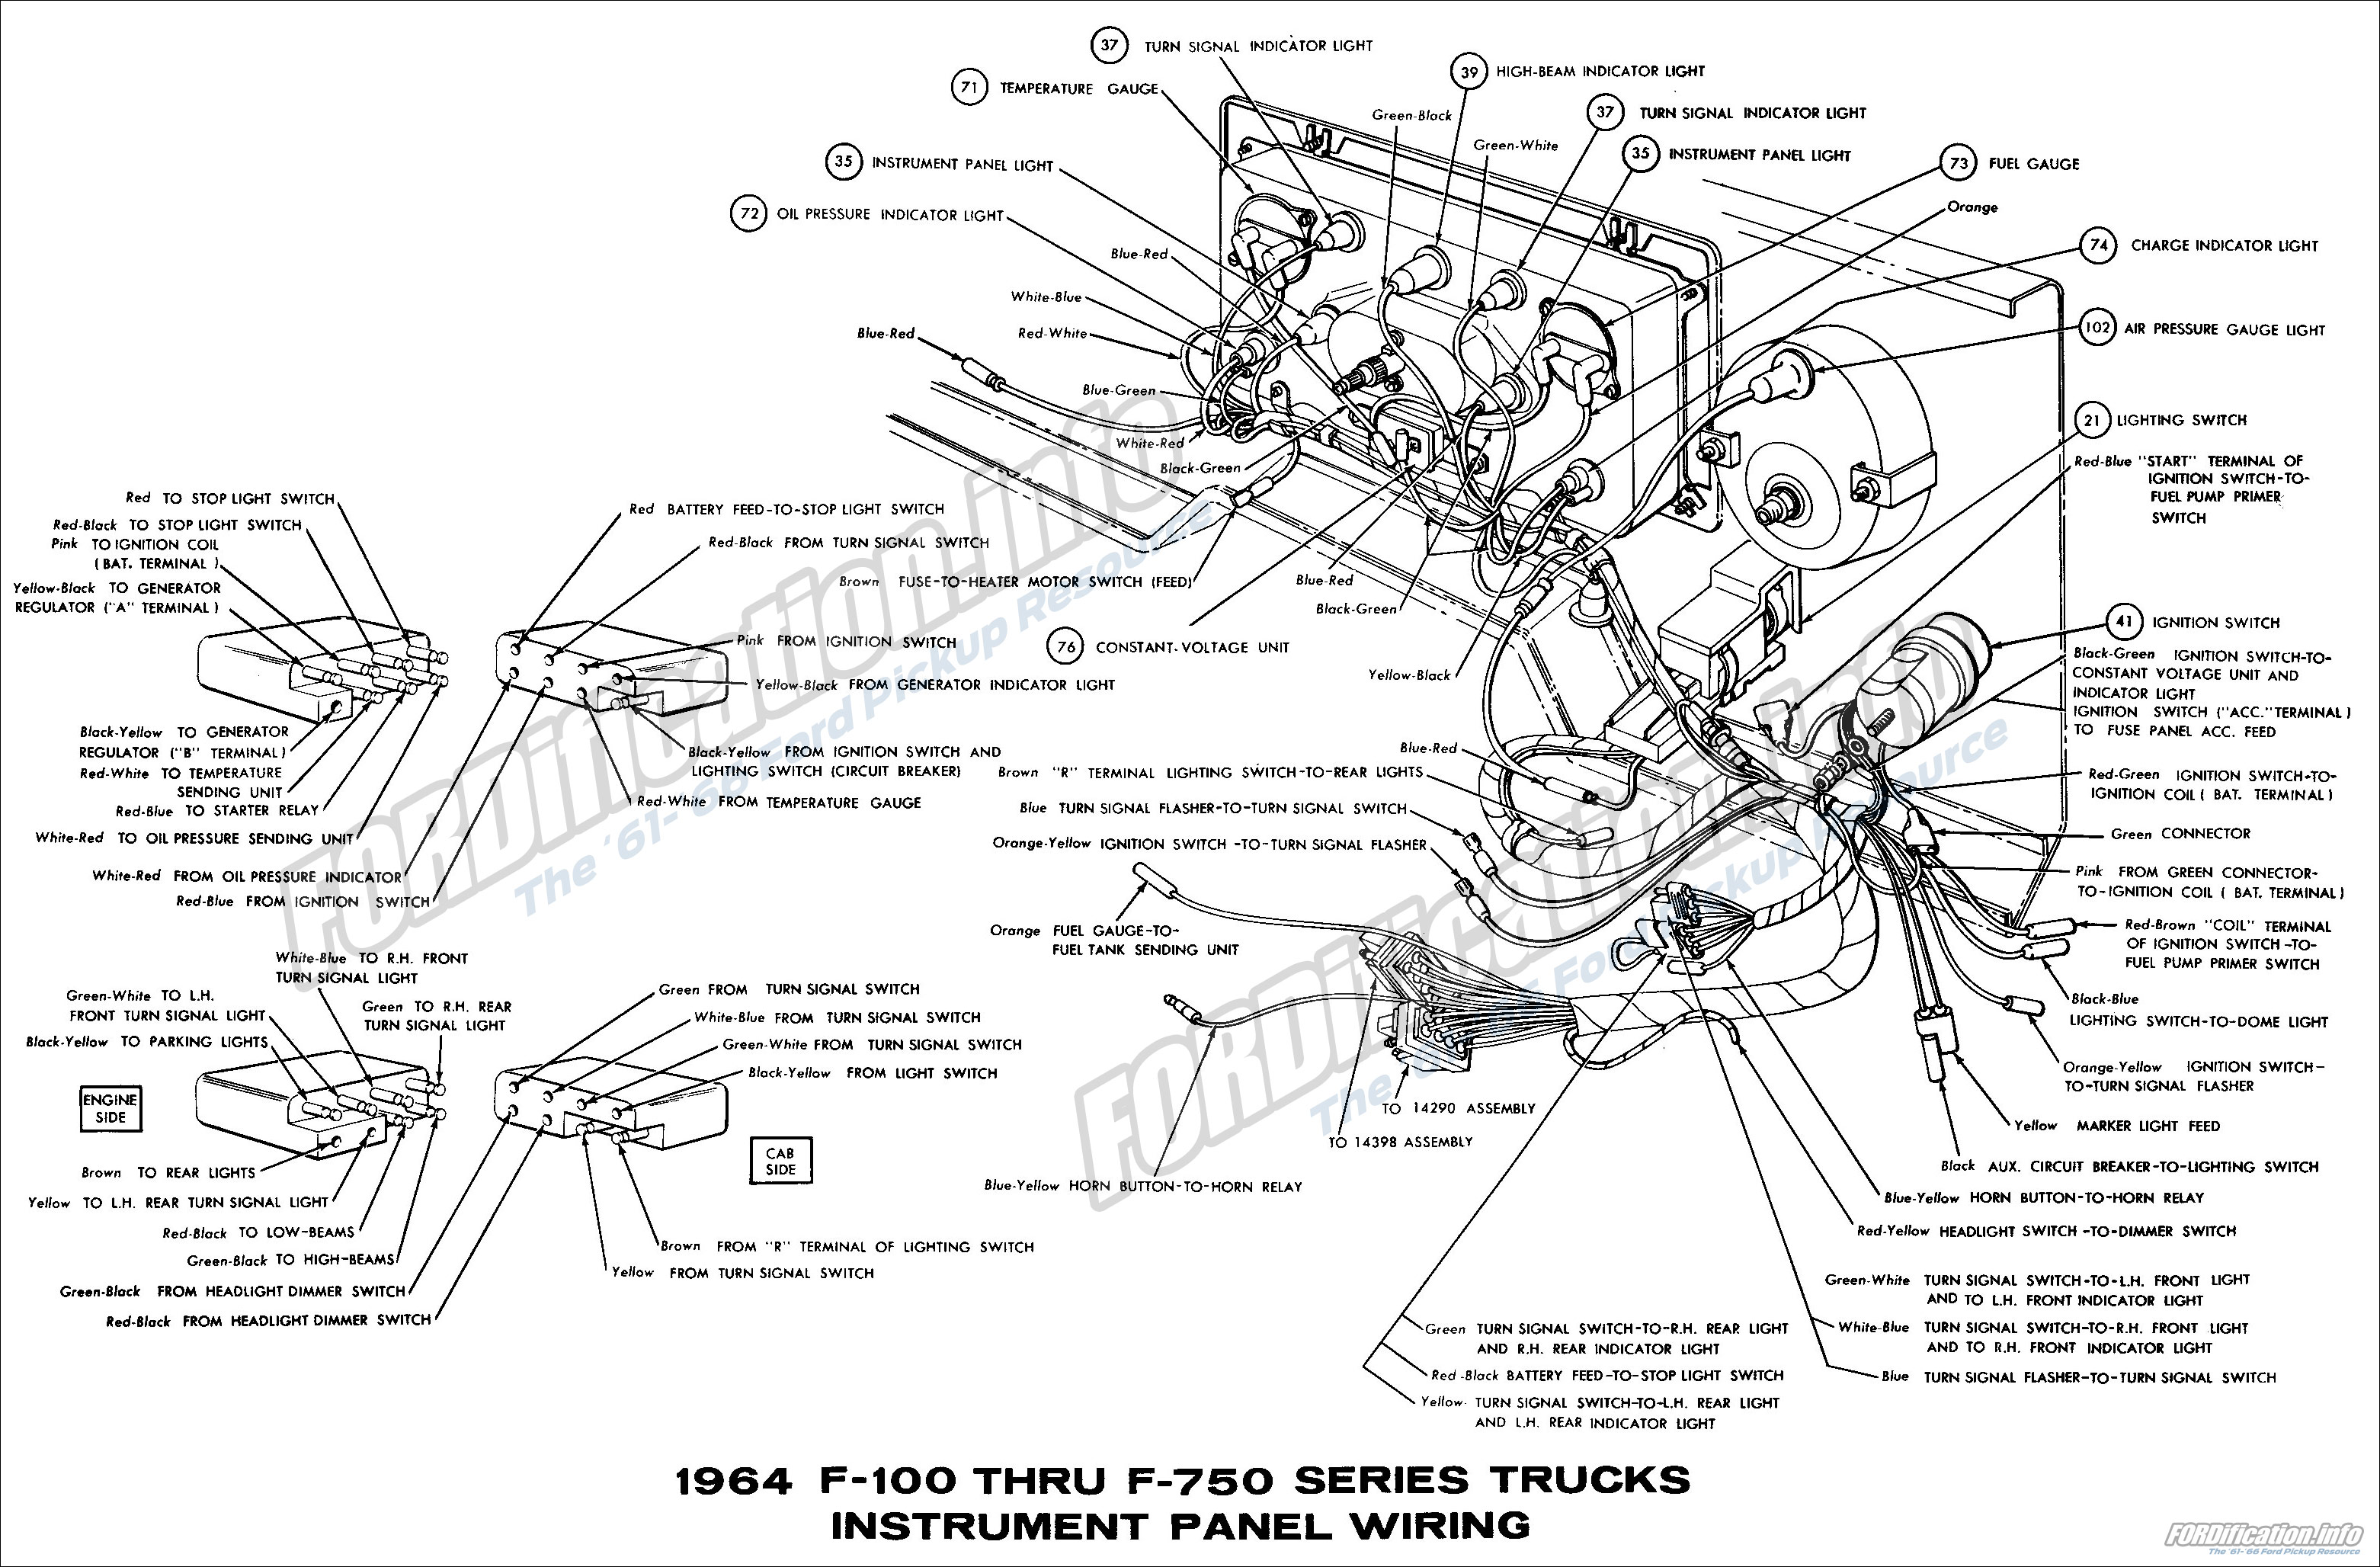 1964 ford truck wiring diagrams fordification info the 62 Ford Truck 59 Ford Truck